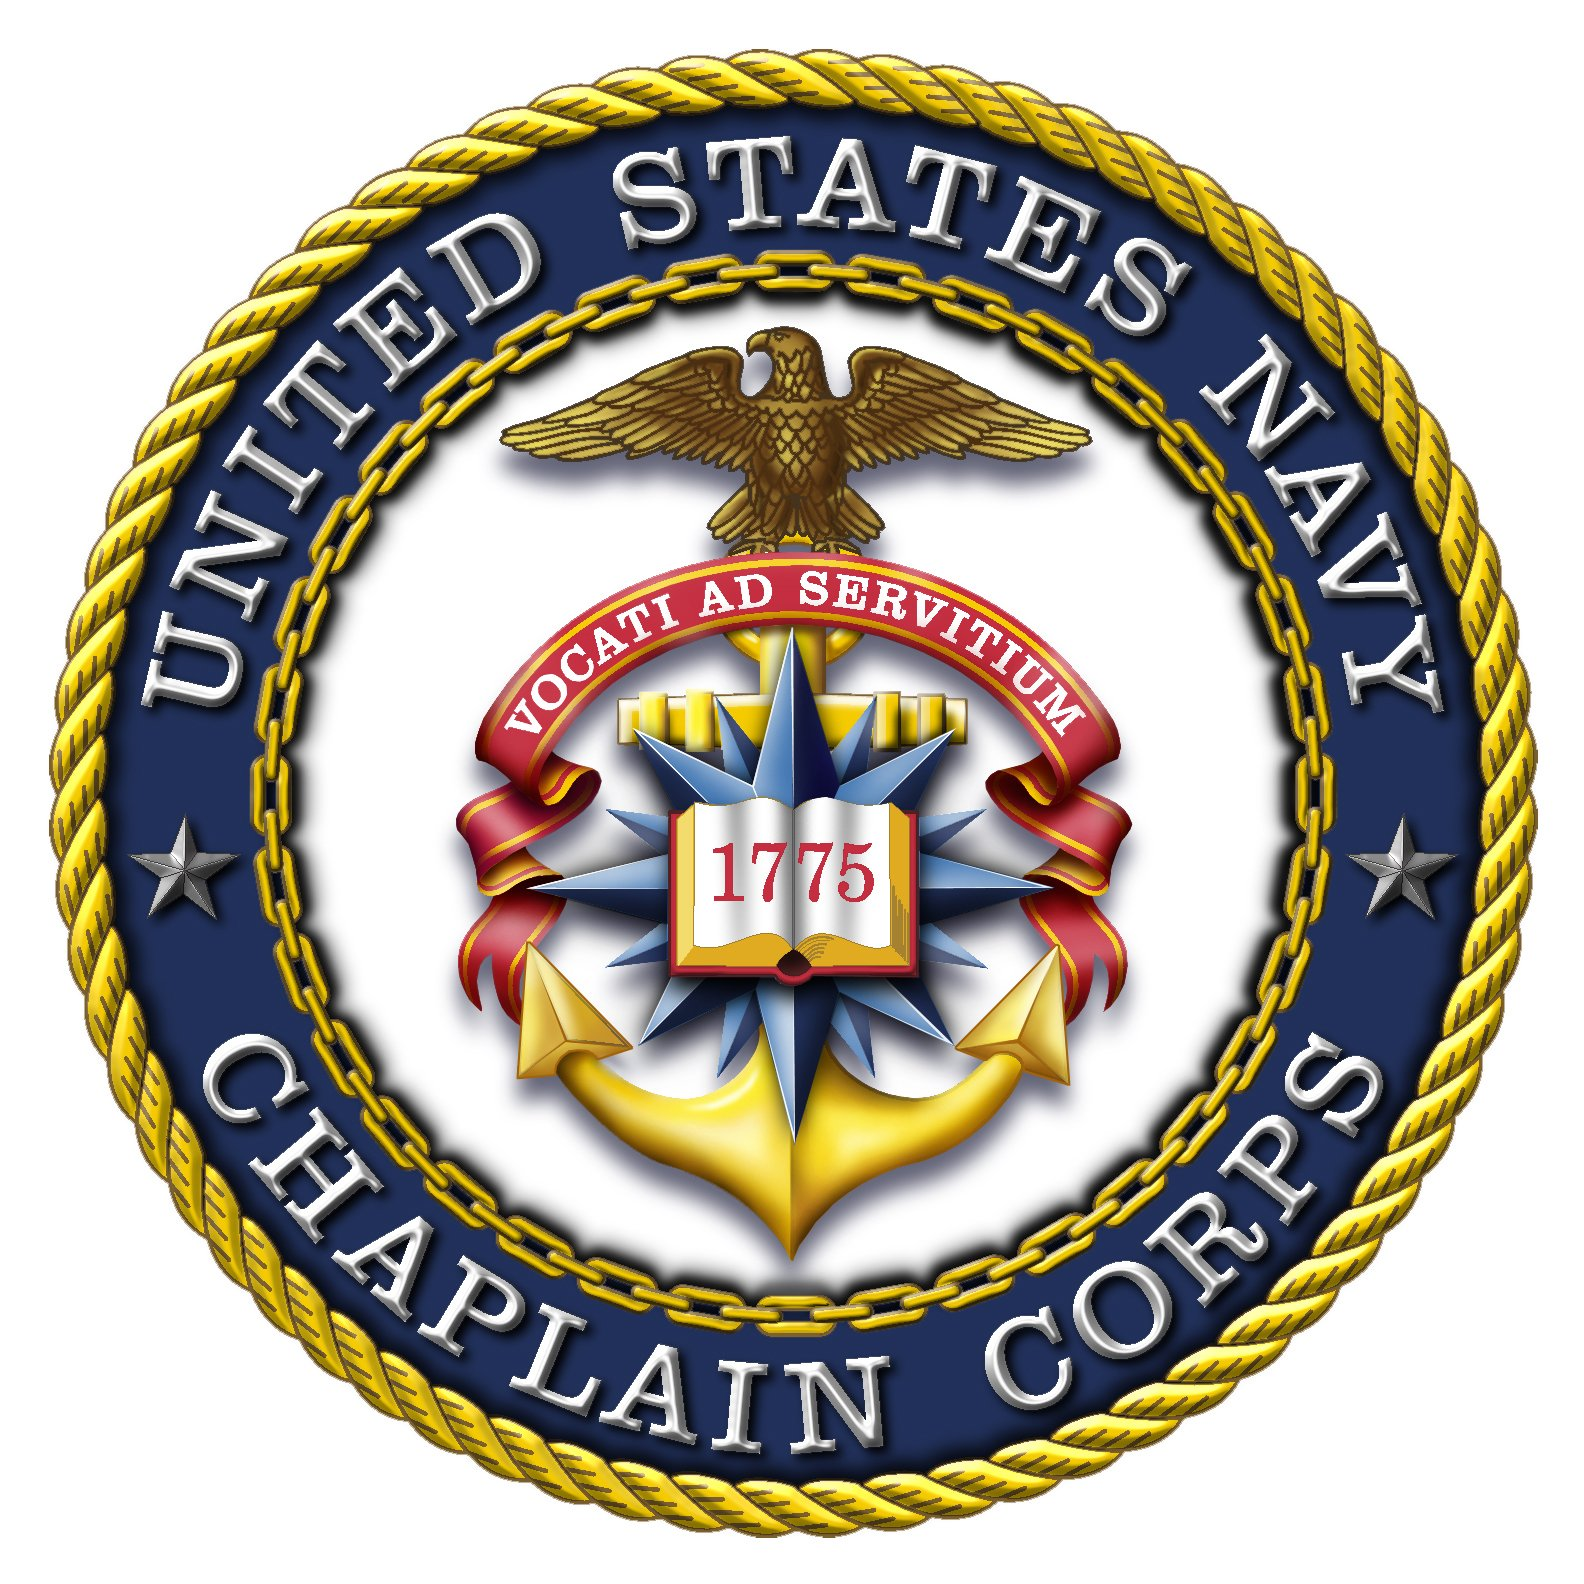 25 Marine Corps Emblem Pictures Free Cliparts That You Can Download To